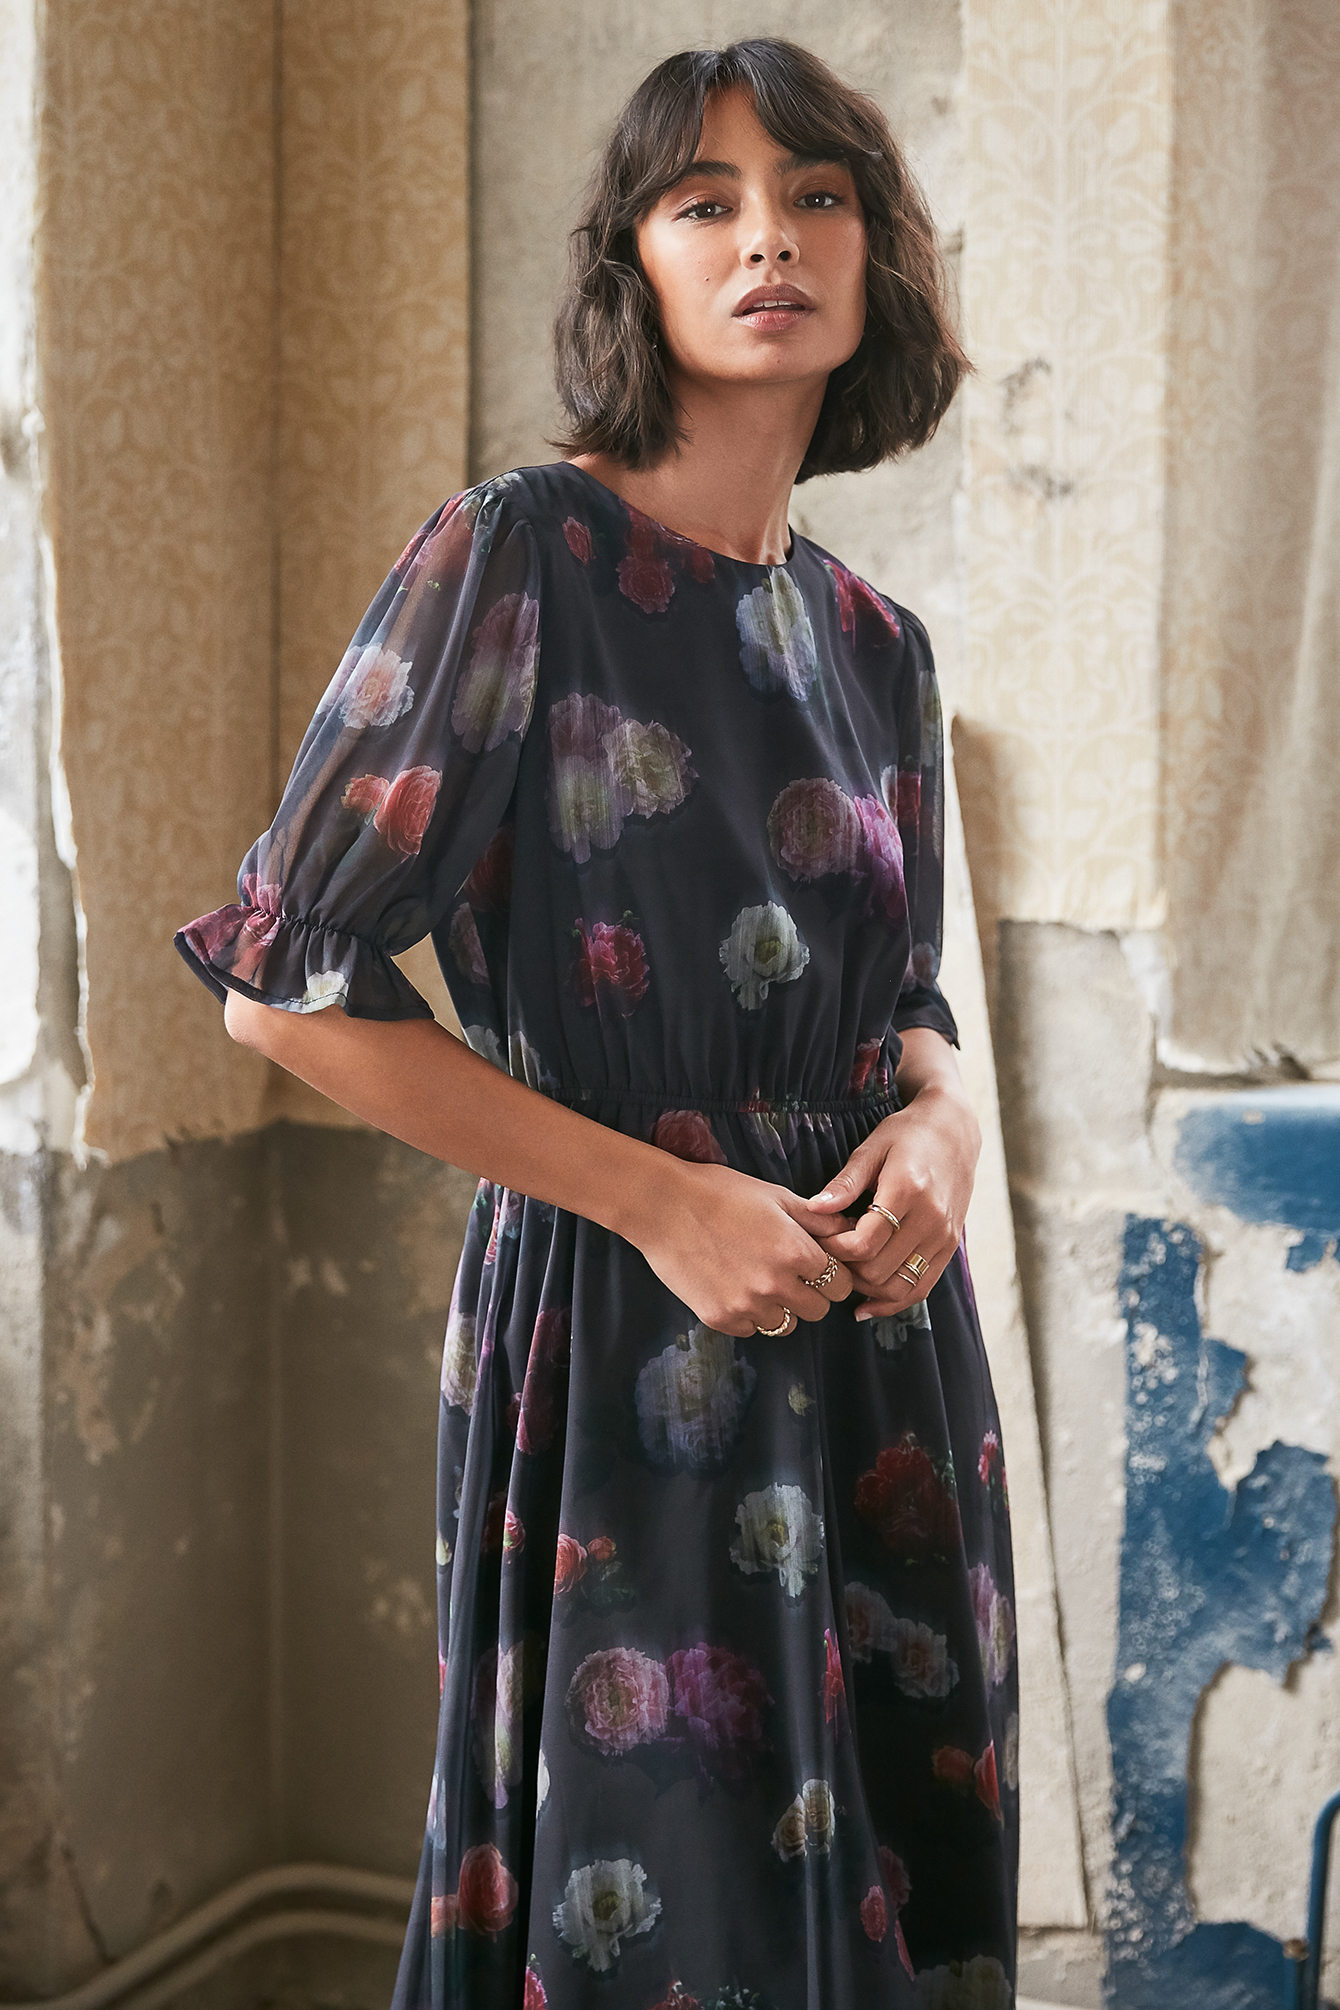 Black Short Sleeve Flower Printed Chiffon Dress